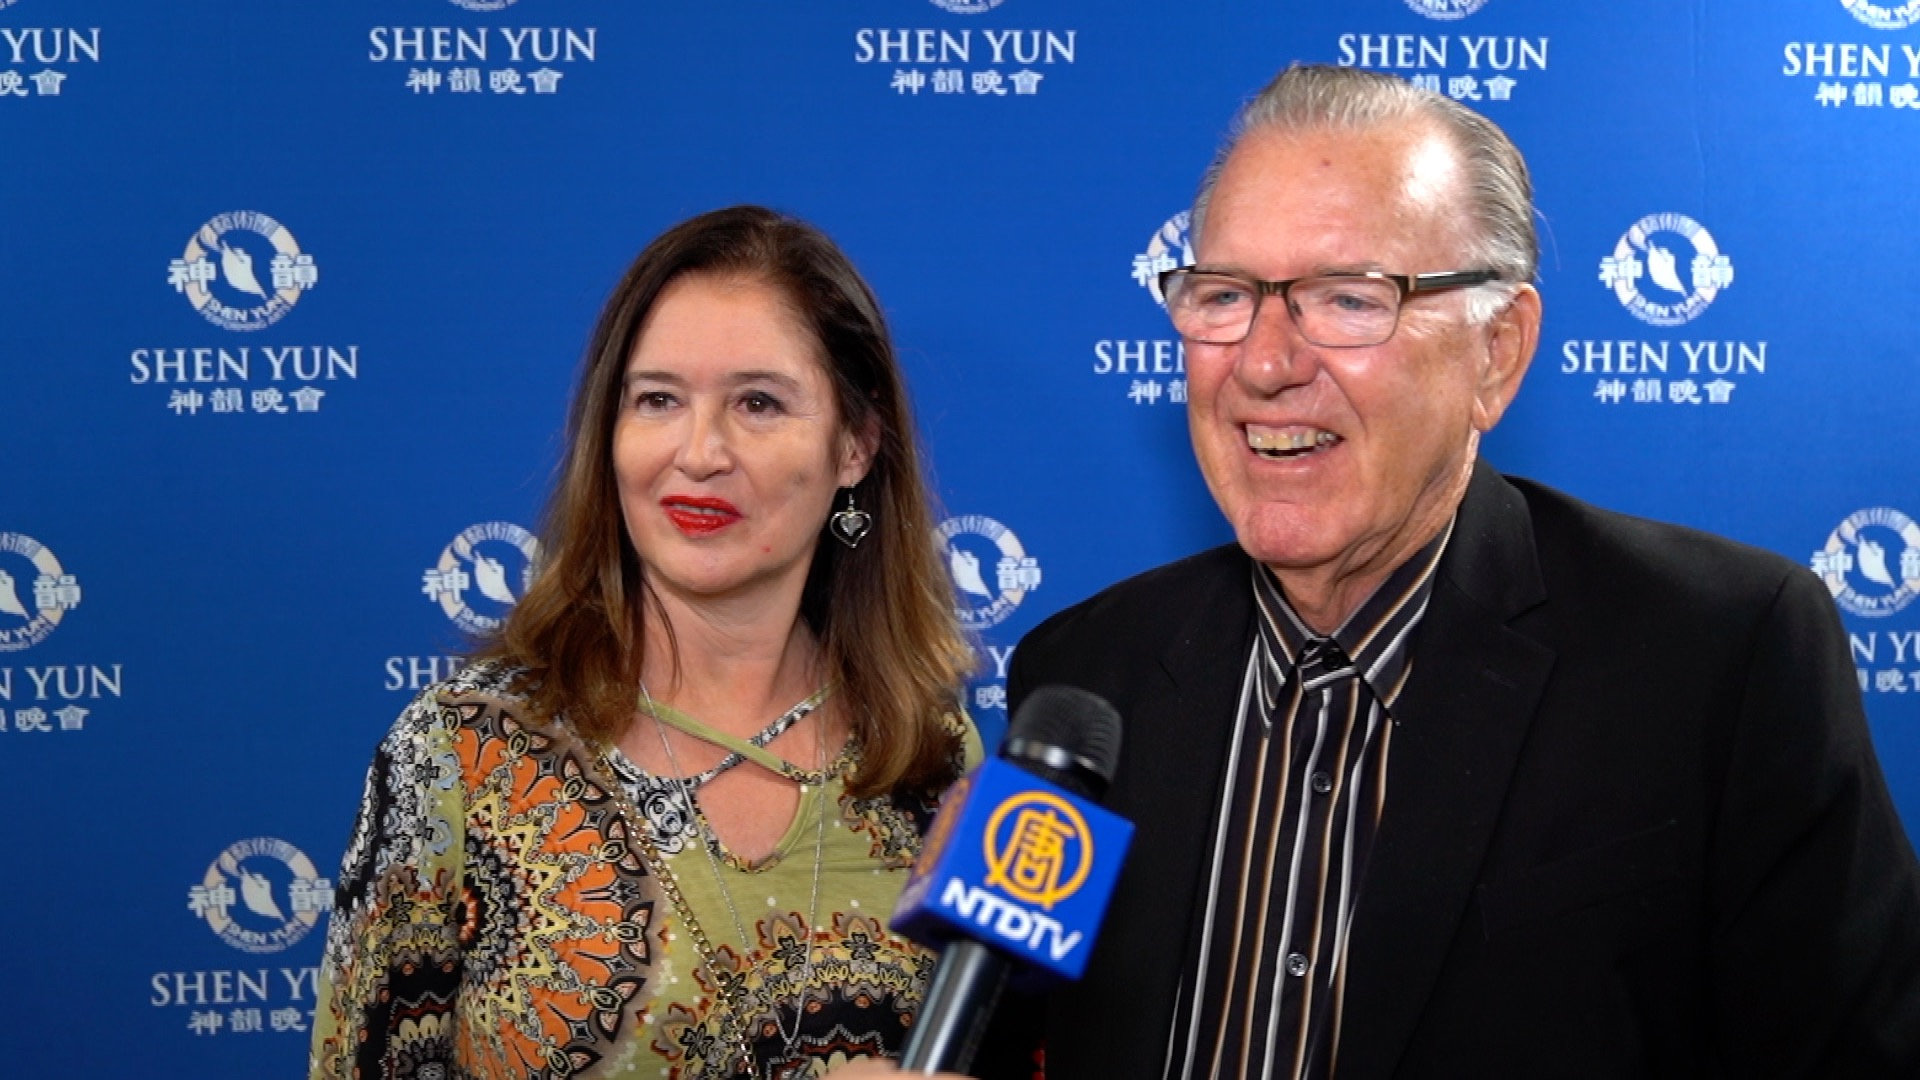 Shen Yun Shares 'Positive Global Message, Especially in This Time'